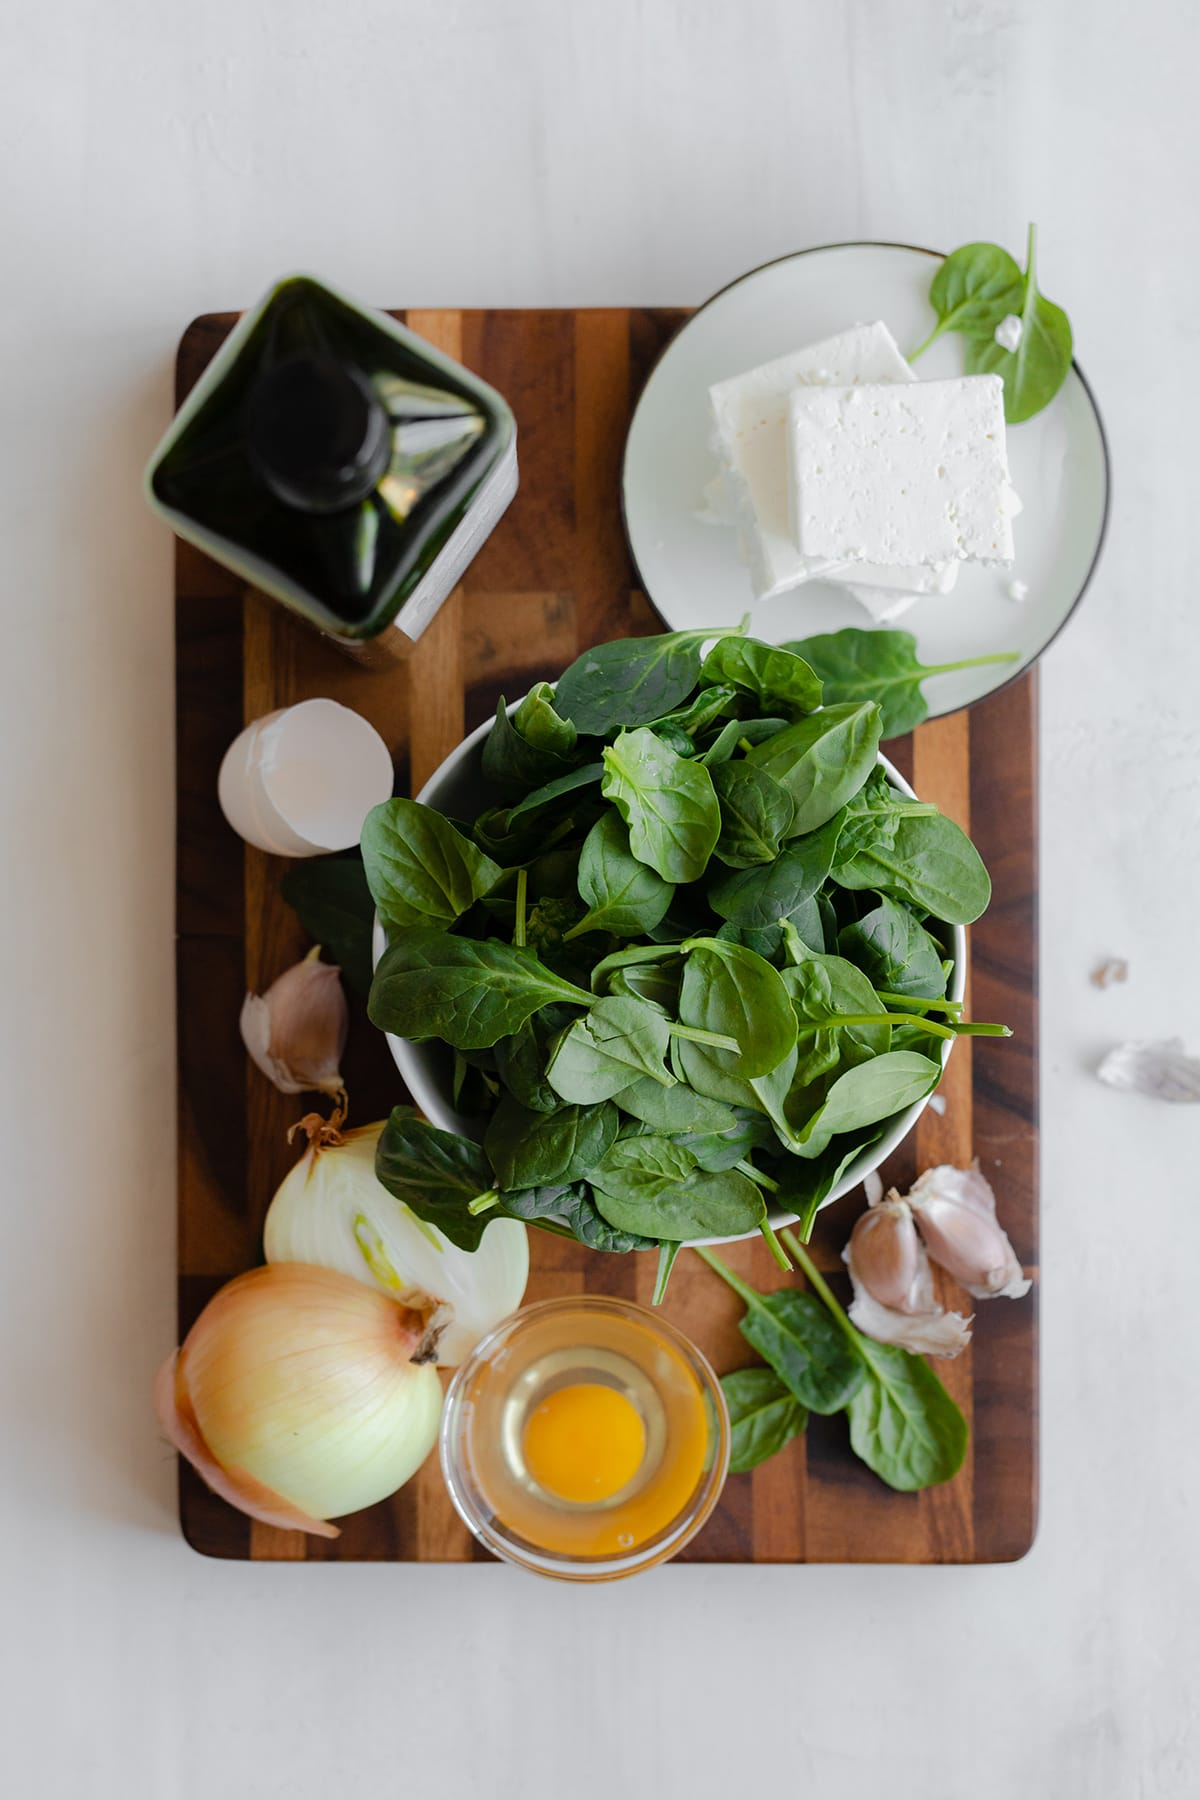 Ingredients for Spinach and Feta Triangles